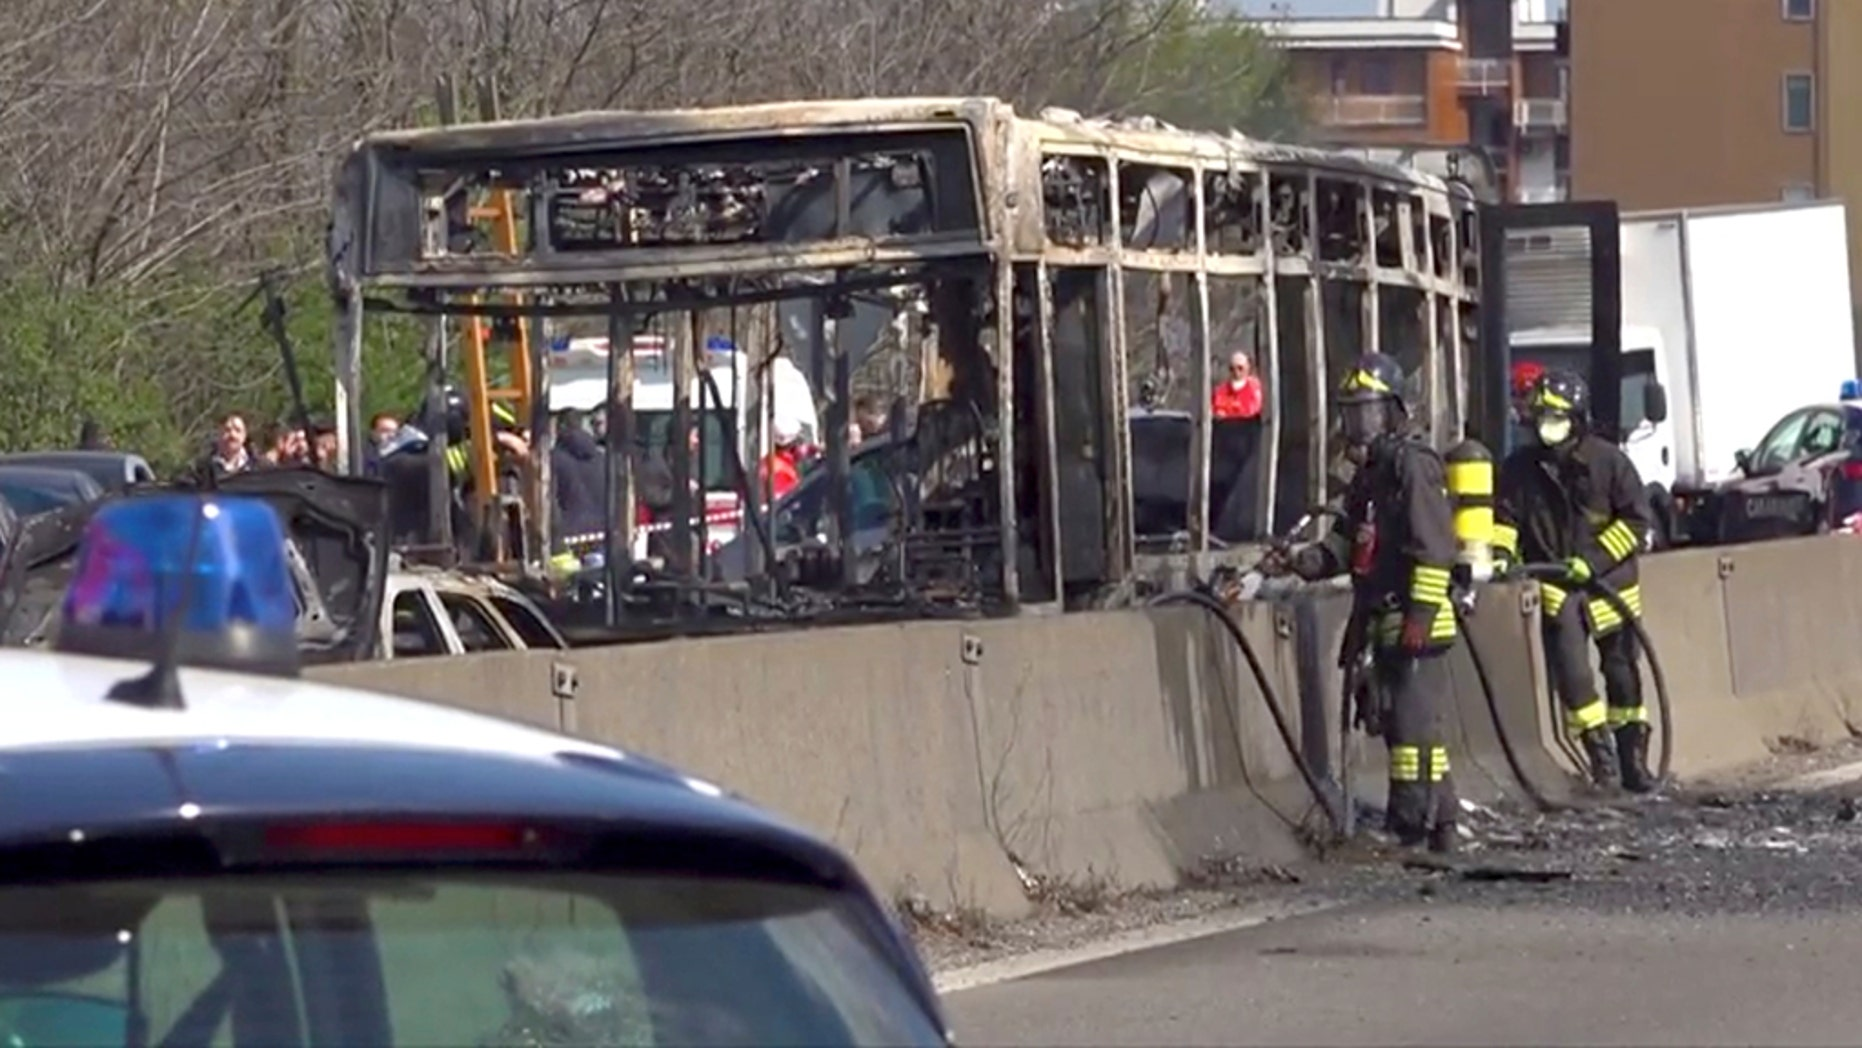 Man hijacks bus carrying pupils, sets it alight - English